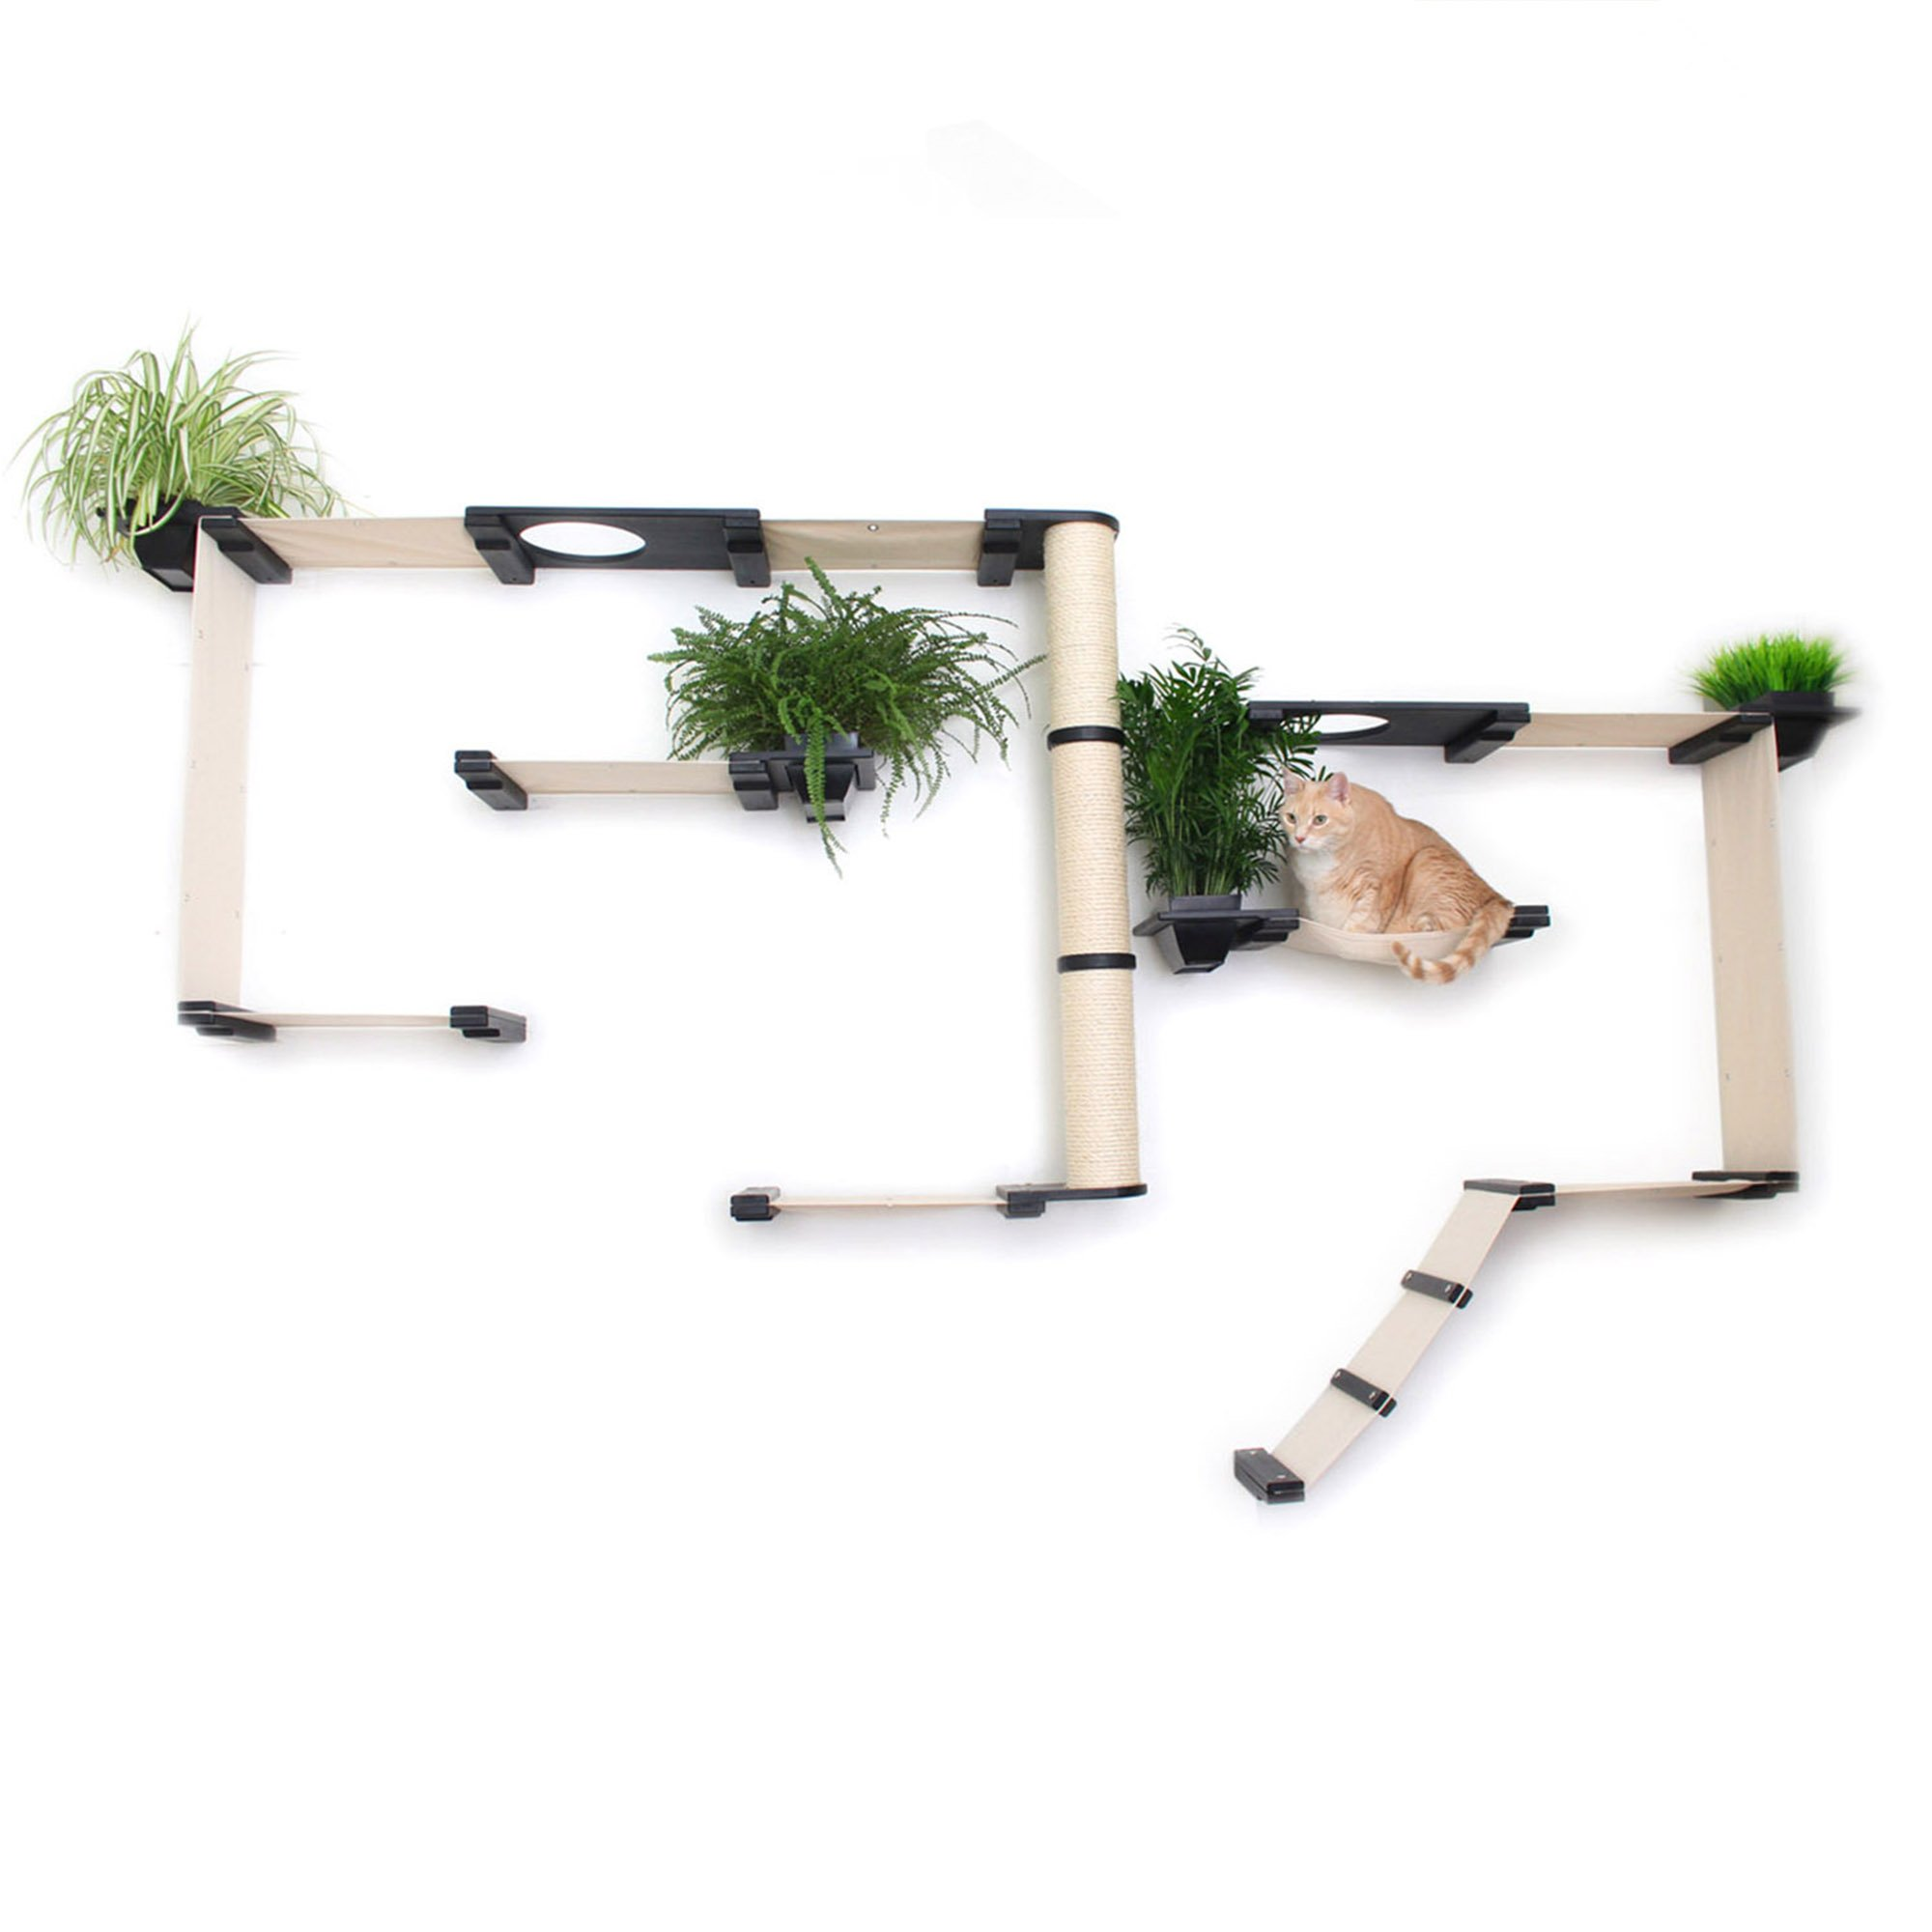 Catastrophicreations The Cat Mod Gardens Complex With Planters For Cats In Onyx, 109 In W X 63 In H, 58 Lb